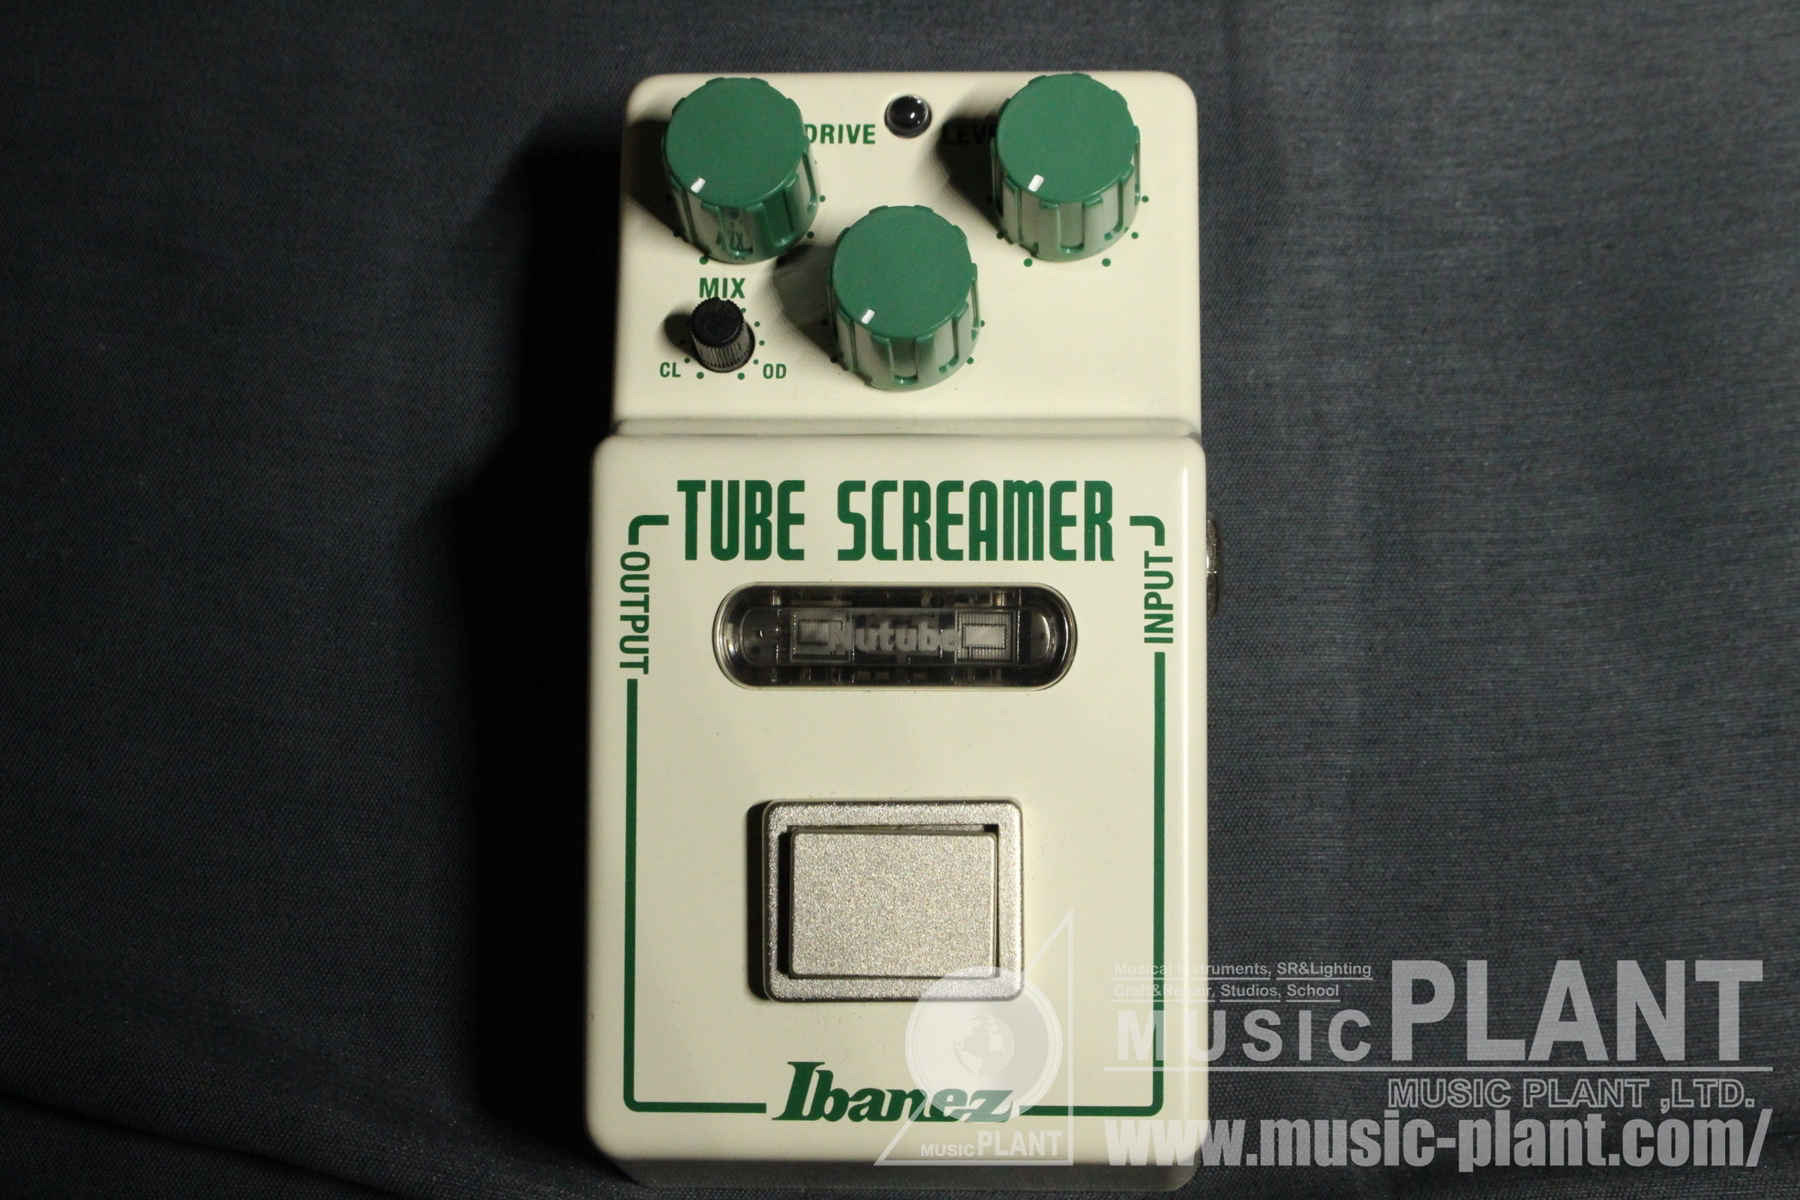 NTS NU TUBE SCREAMERパネル画像